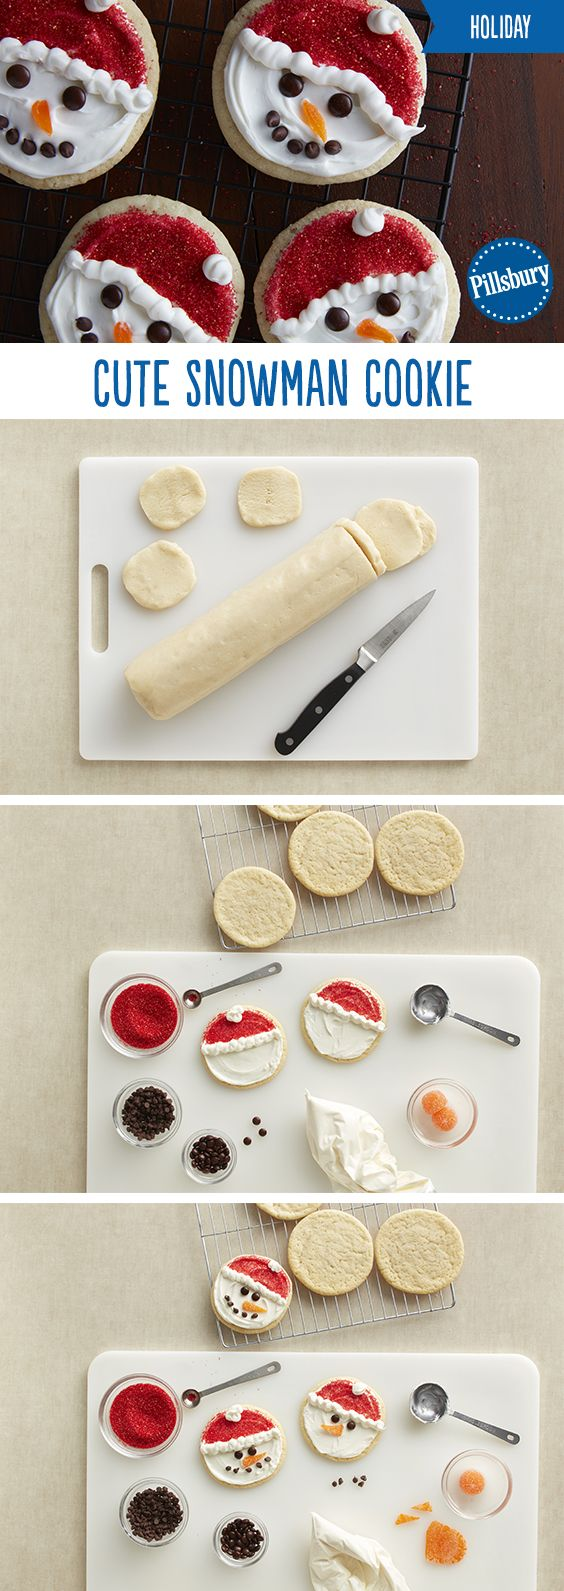 Bring the fun of building a snowman indoors with these kid-friendly holiday cookies. This holiday recipe is super easy and it doesn't get much cuter than sugar cookies dressed up as snowman! Kids can join in on the fun too and help frost these cookies for a fun holiday activity. They're also a guaranteed crowd-pleaser at your holiday parties and cookie exchanges!